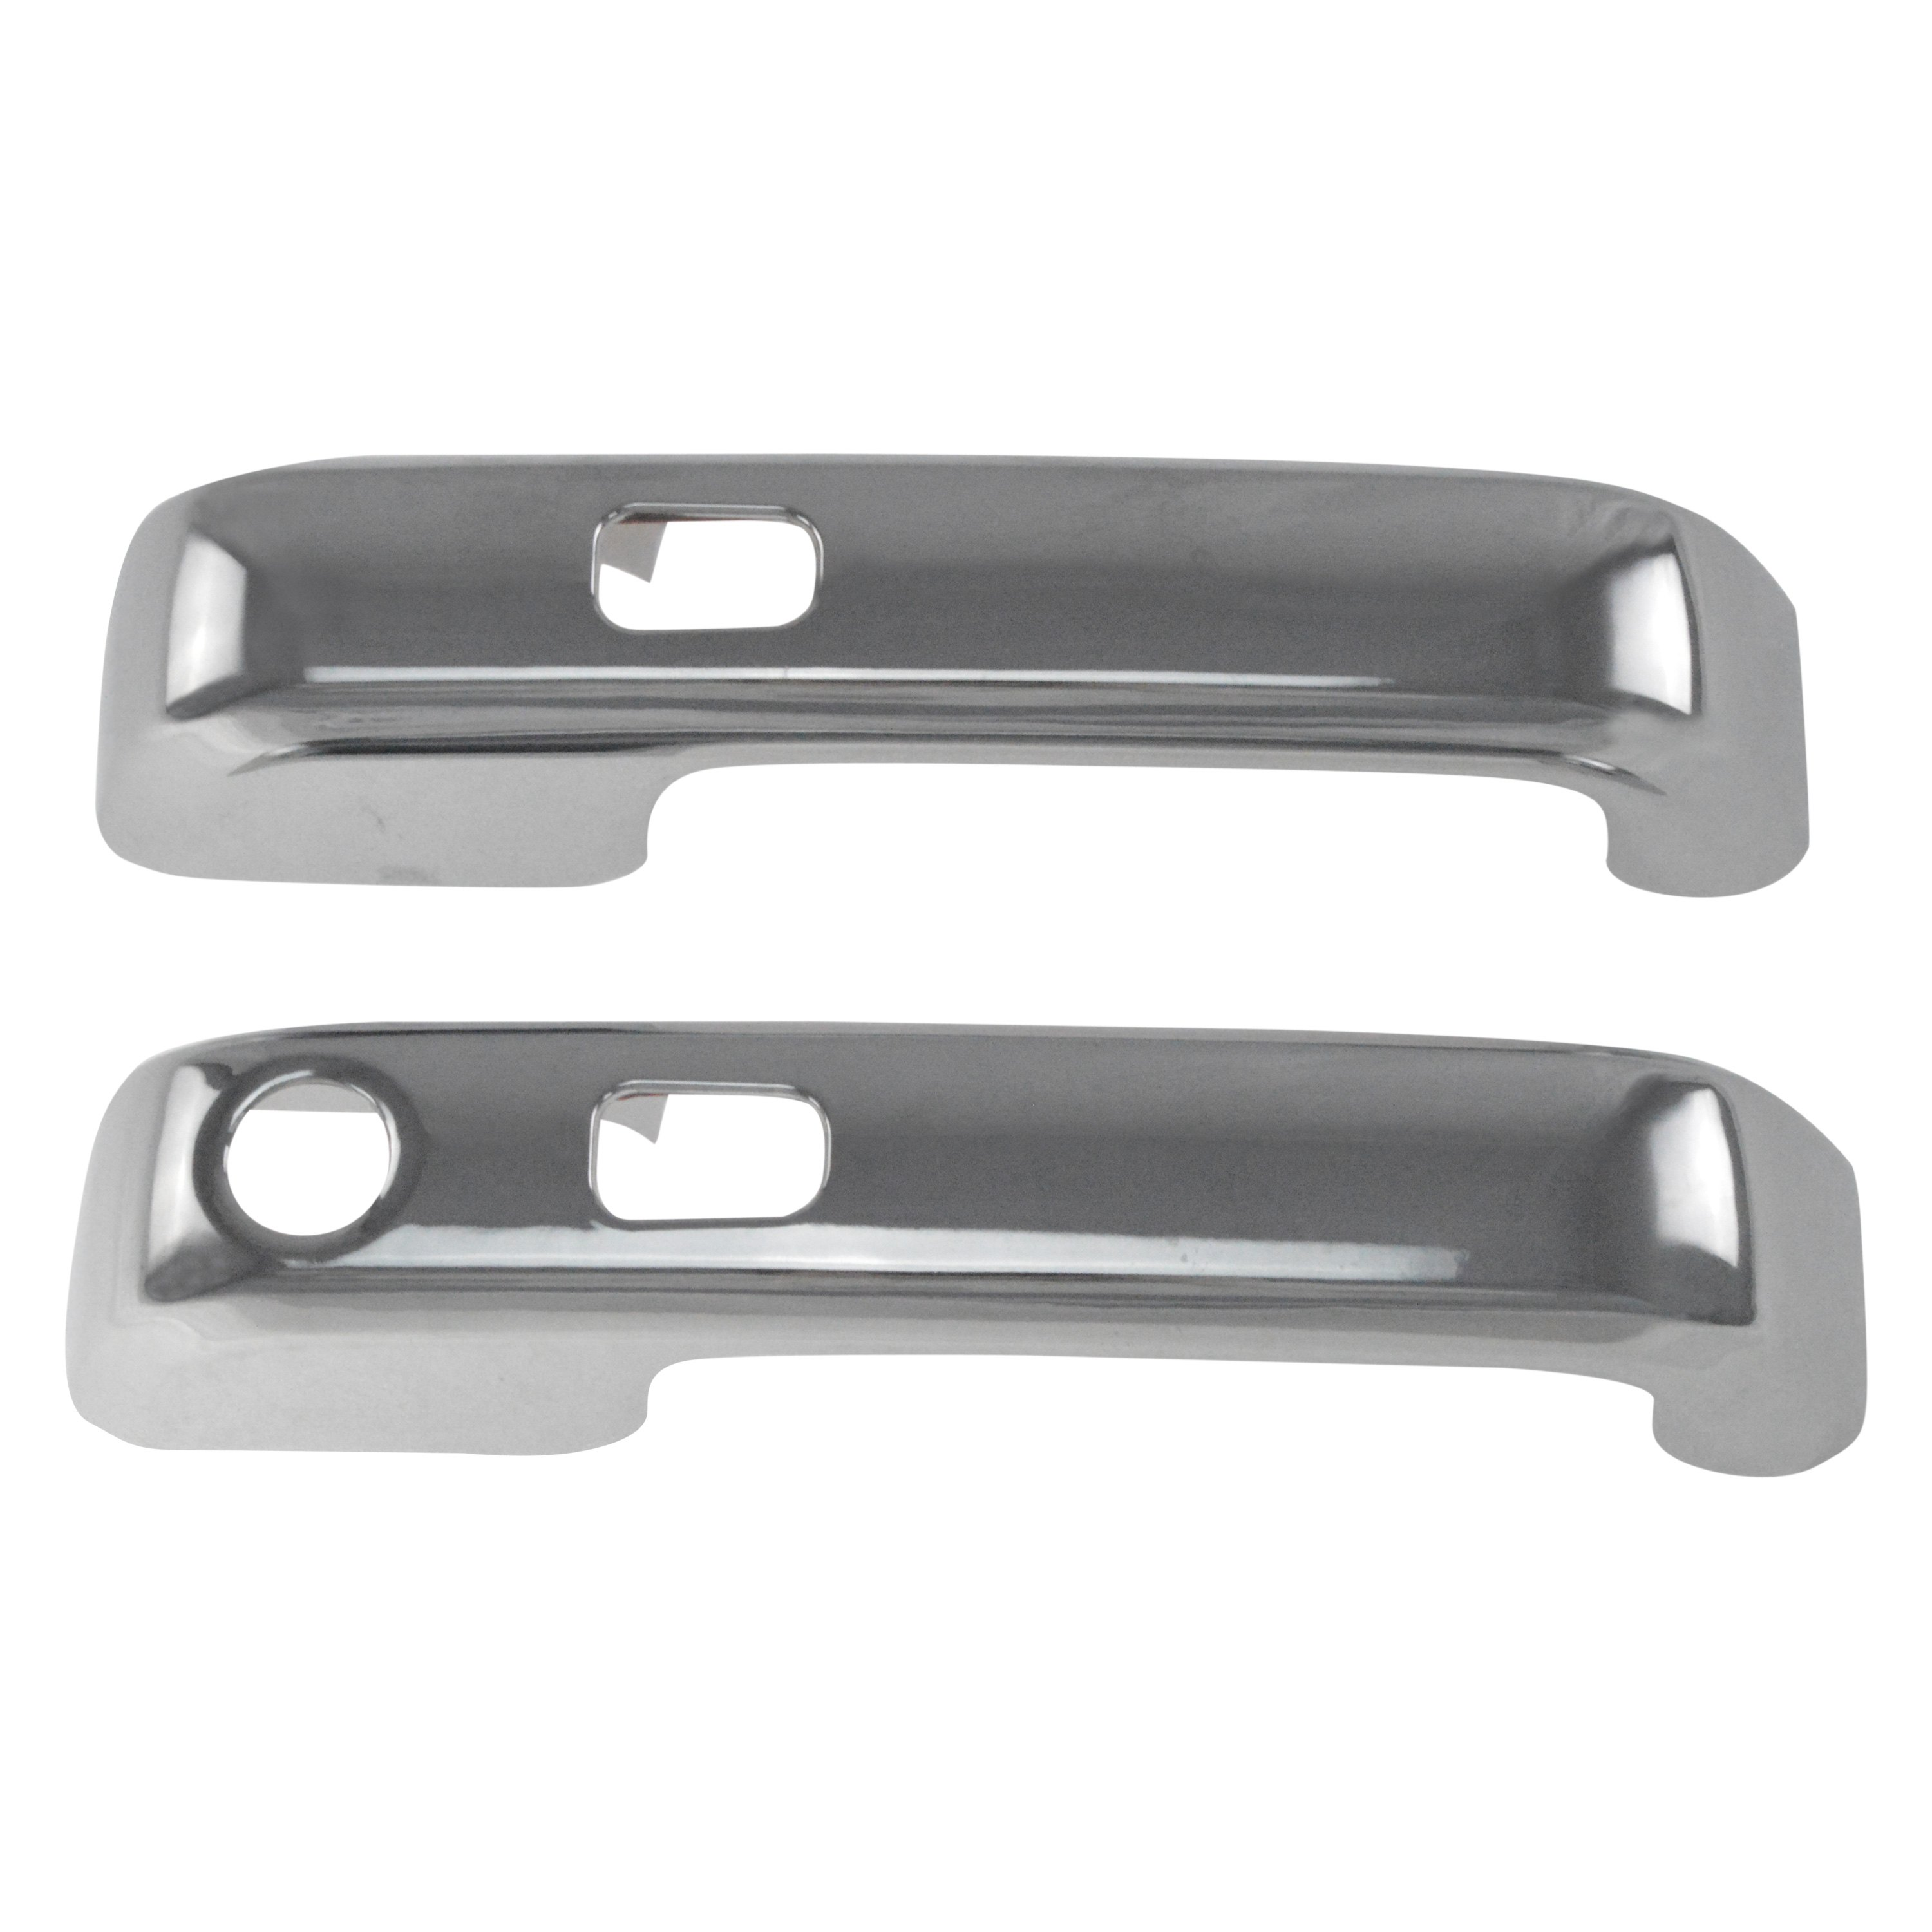 Ford Window Handle : Black horse ford f door handle covers